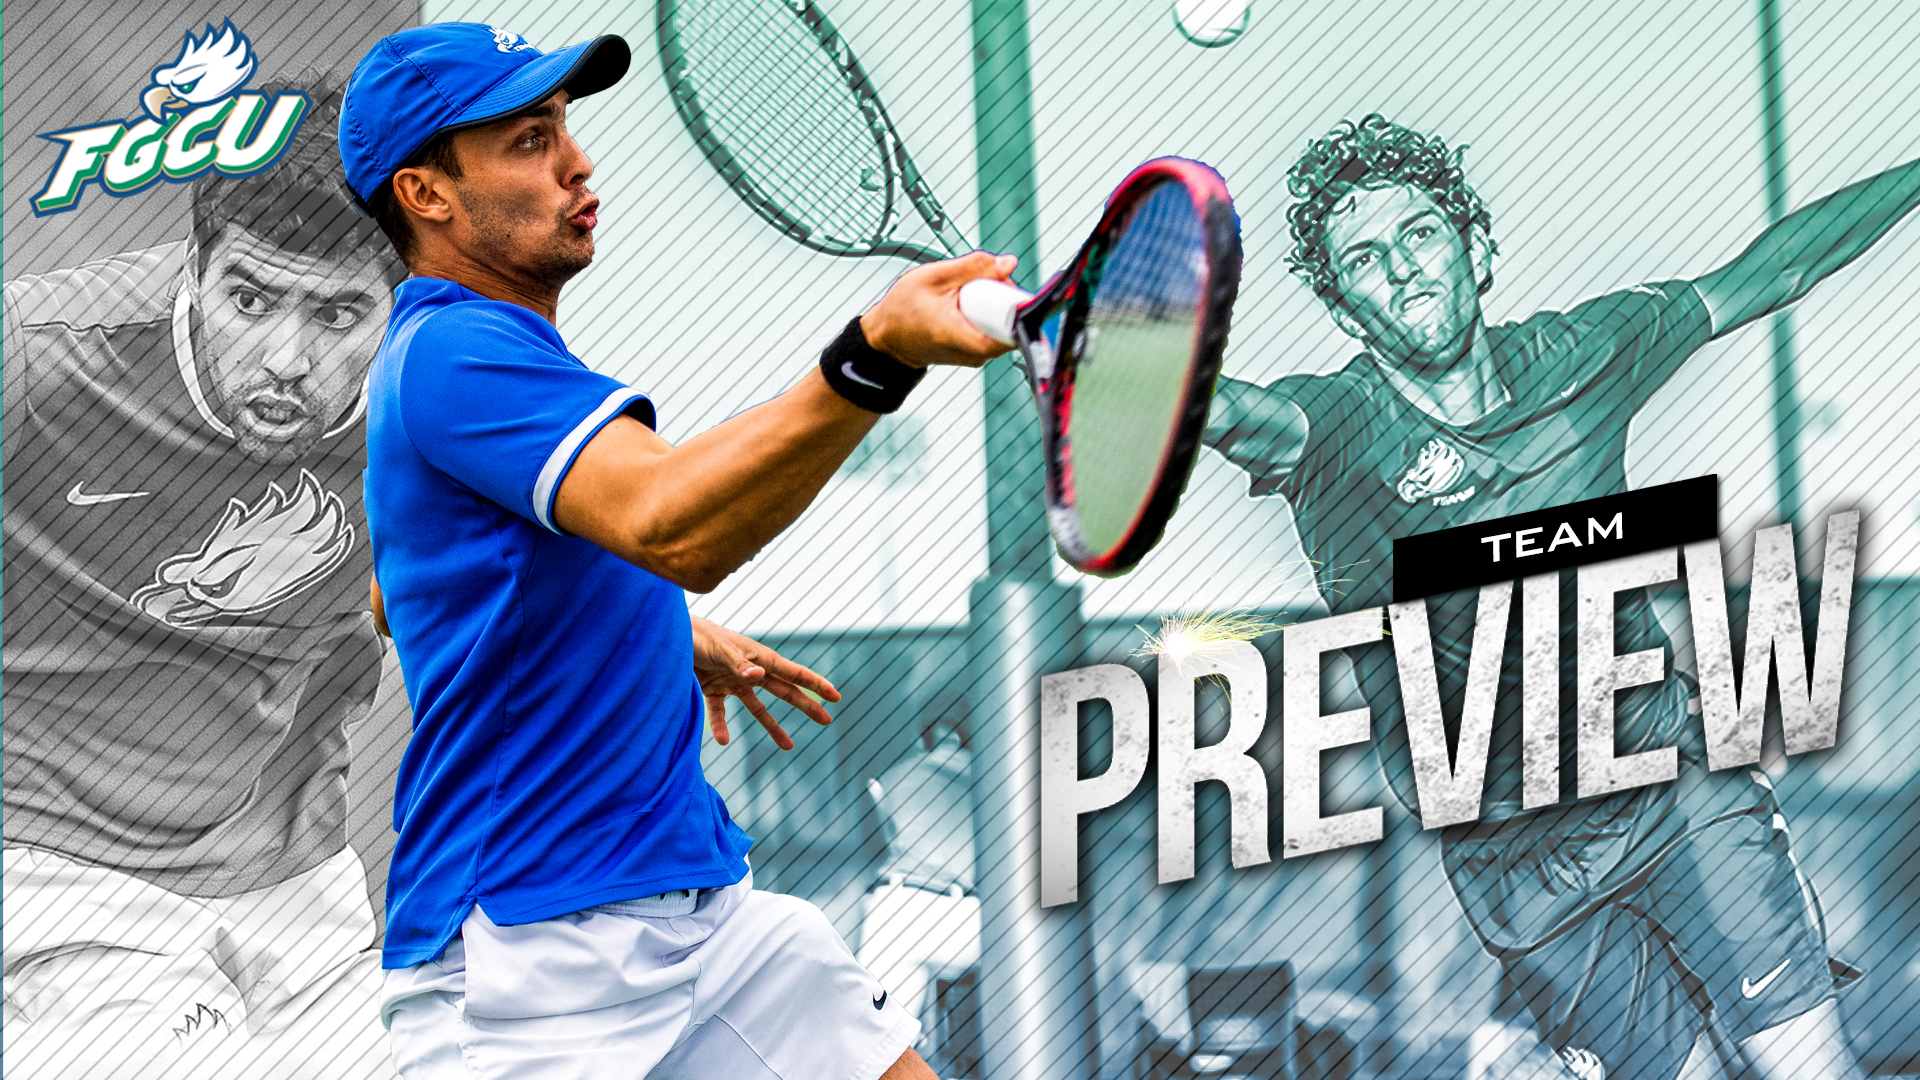 2020 Men's @ASUNTennis Season Preview: FGCU Eagles